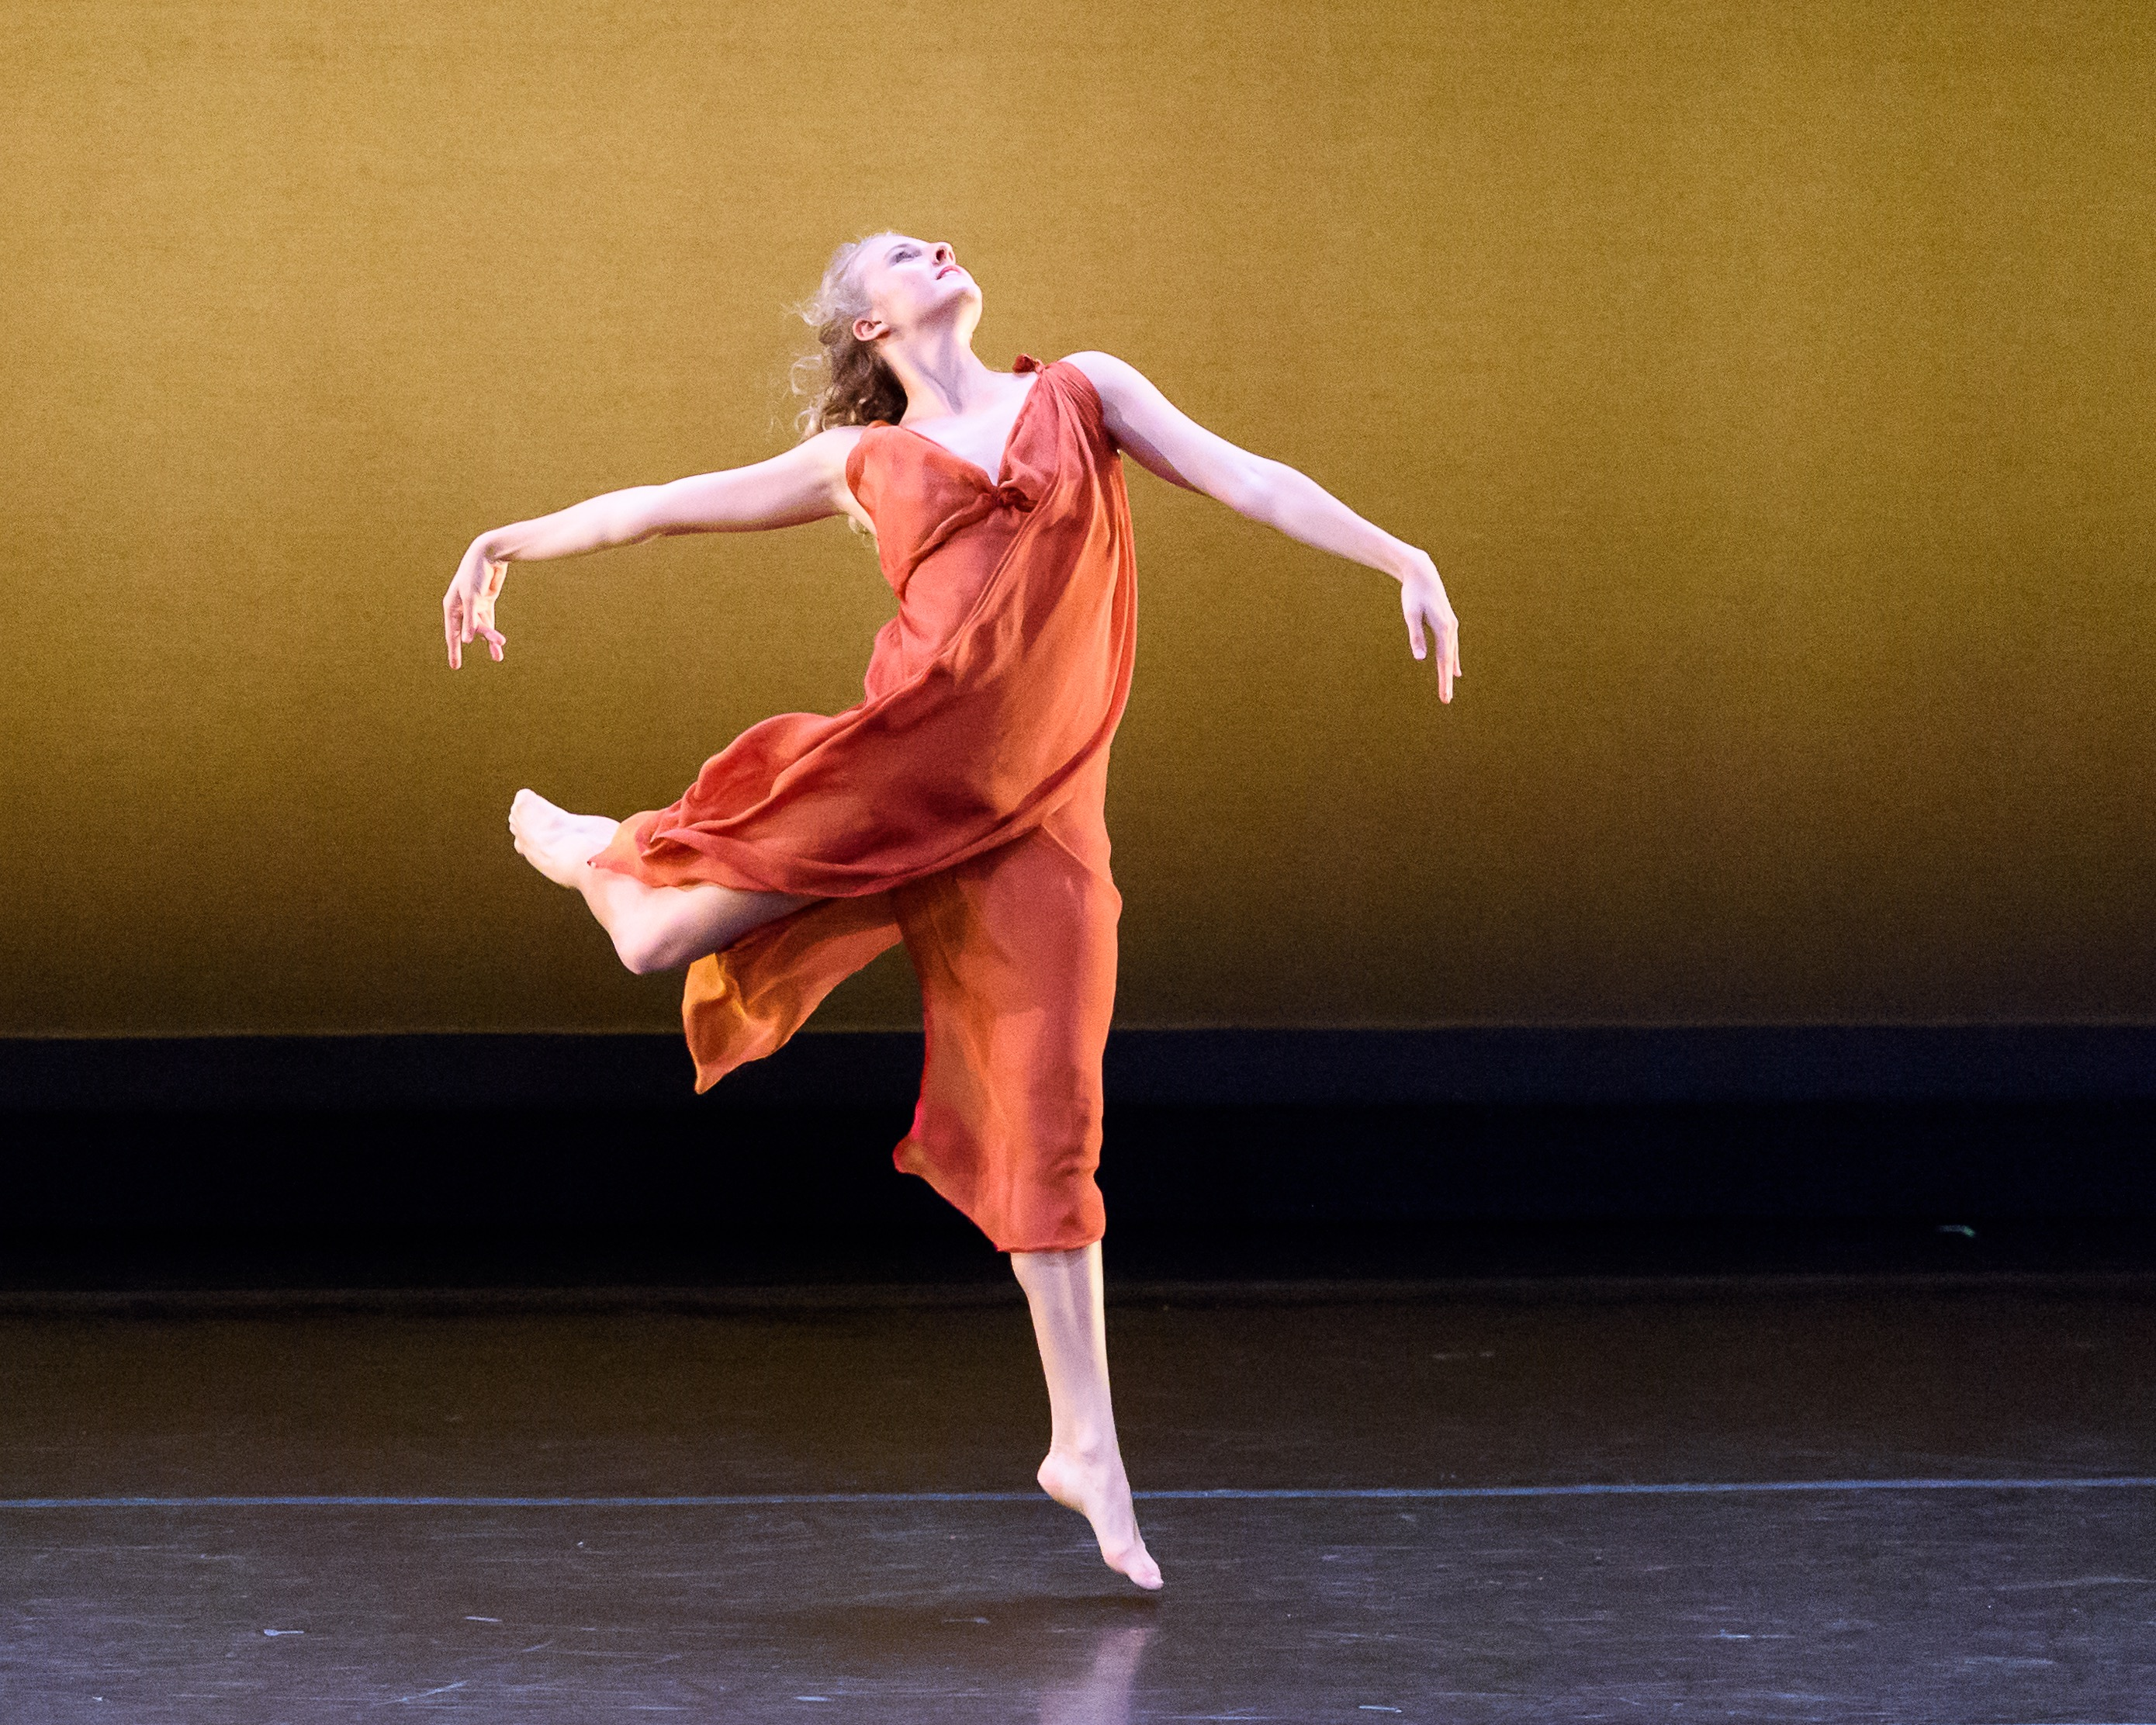 Photo courtesy of the Isadora Duncan Dance Foundation, Lori Belilove,  Artistic Director, New York, NY. www.isadoraduncan.org.